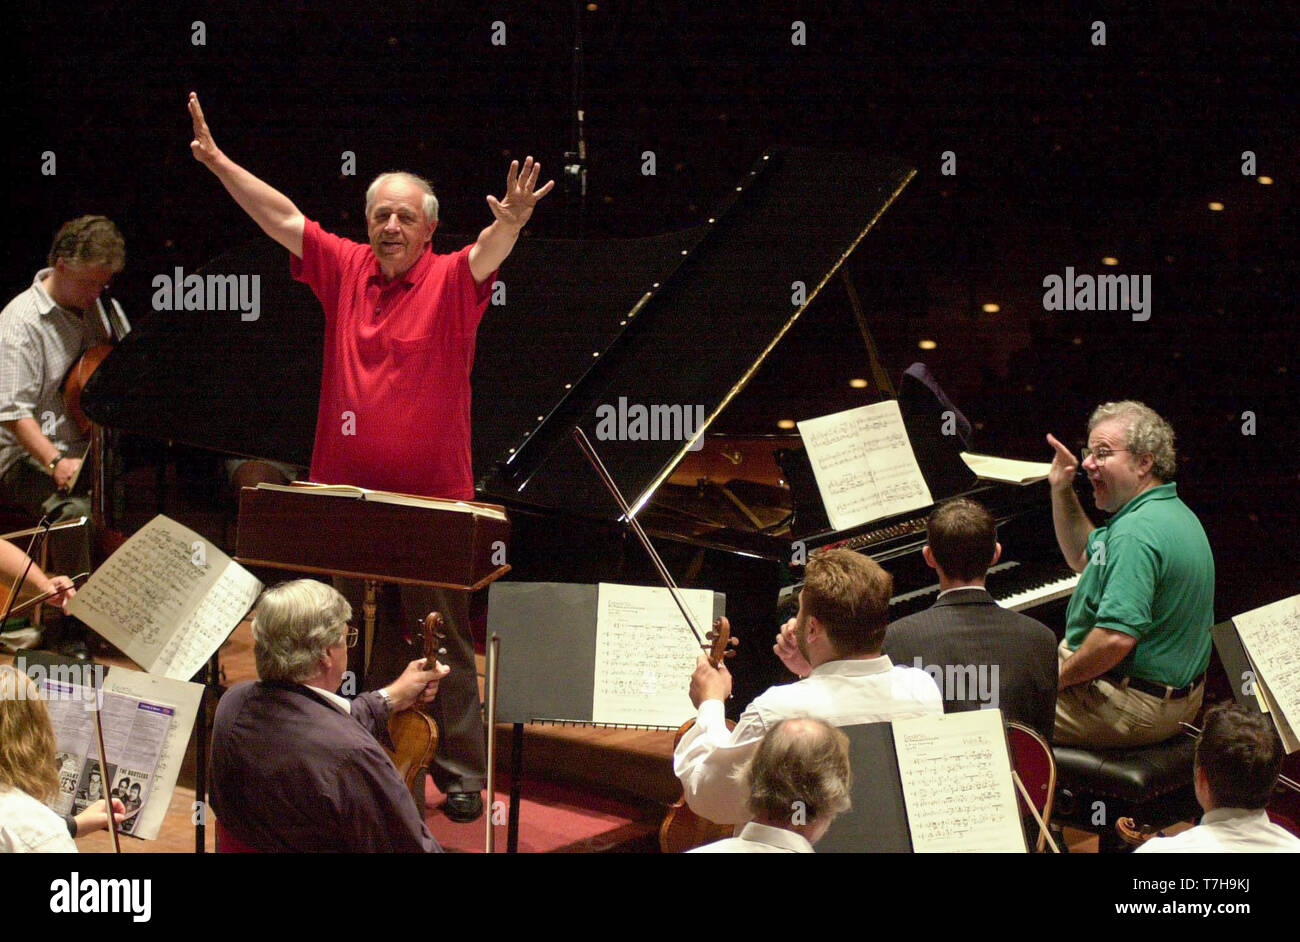 World famous conductor Pierre Boulez conducts the London Symphony Orchestra and pianist Emmanuel Ax during rehearsals for tonights performance of Boulez 2000 at Edinburghs Usher Hall as part of the International Festival. 24/8/2000. - Stock Image